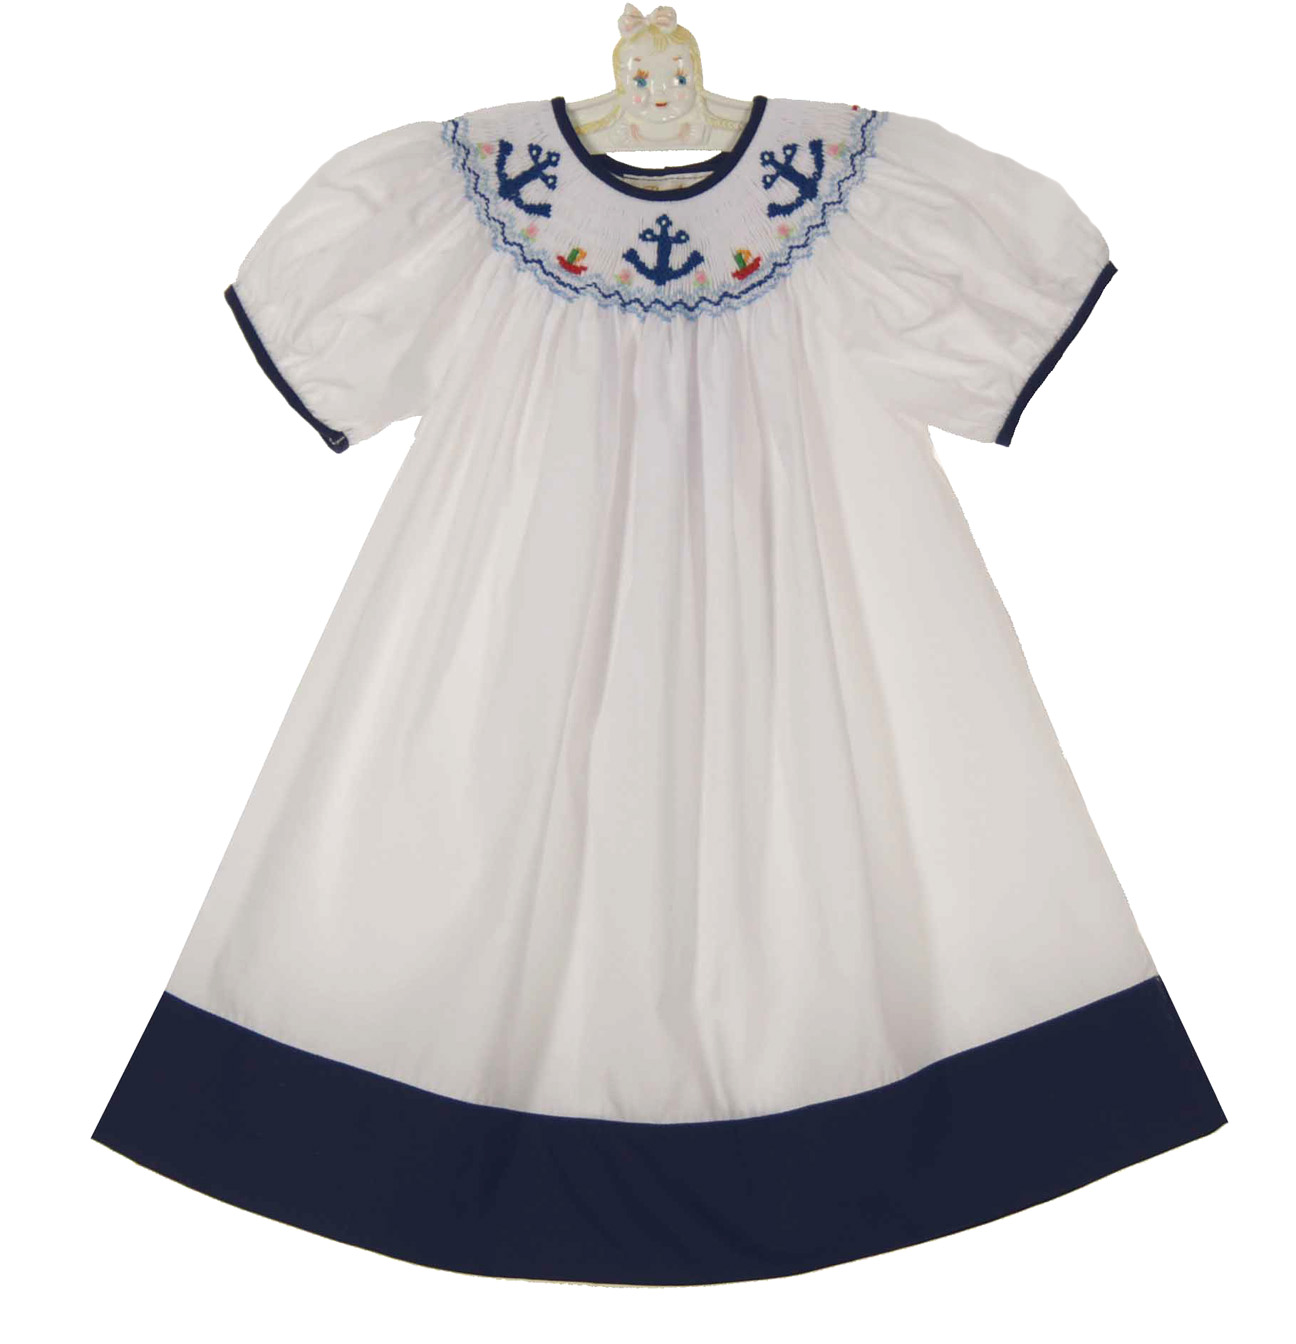 Rosalina White Bishop Smocked Sailor Dresswhite Bishop